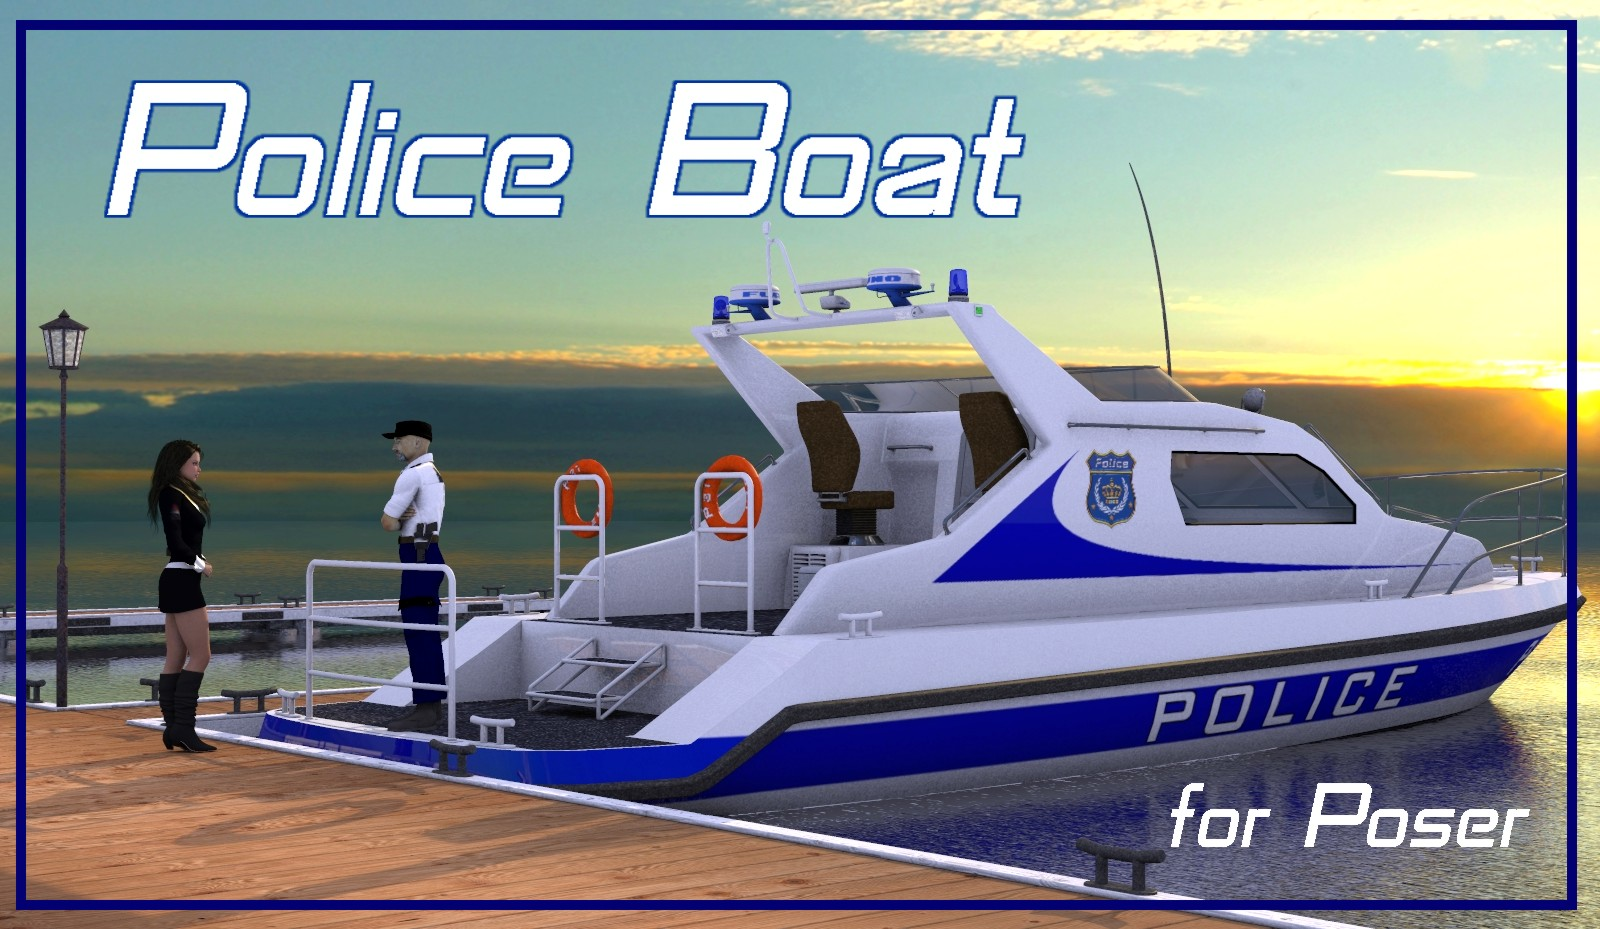 Police Boat by mausel